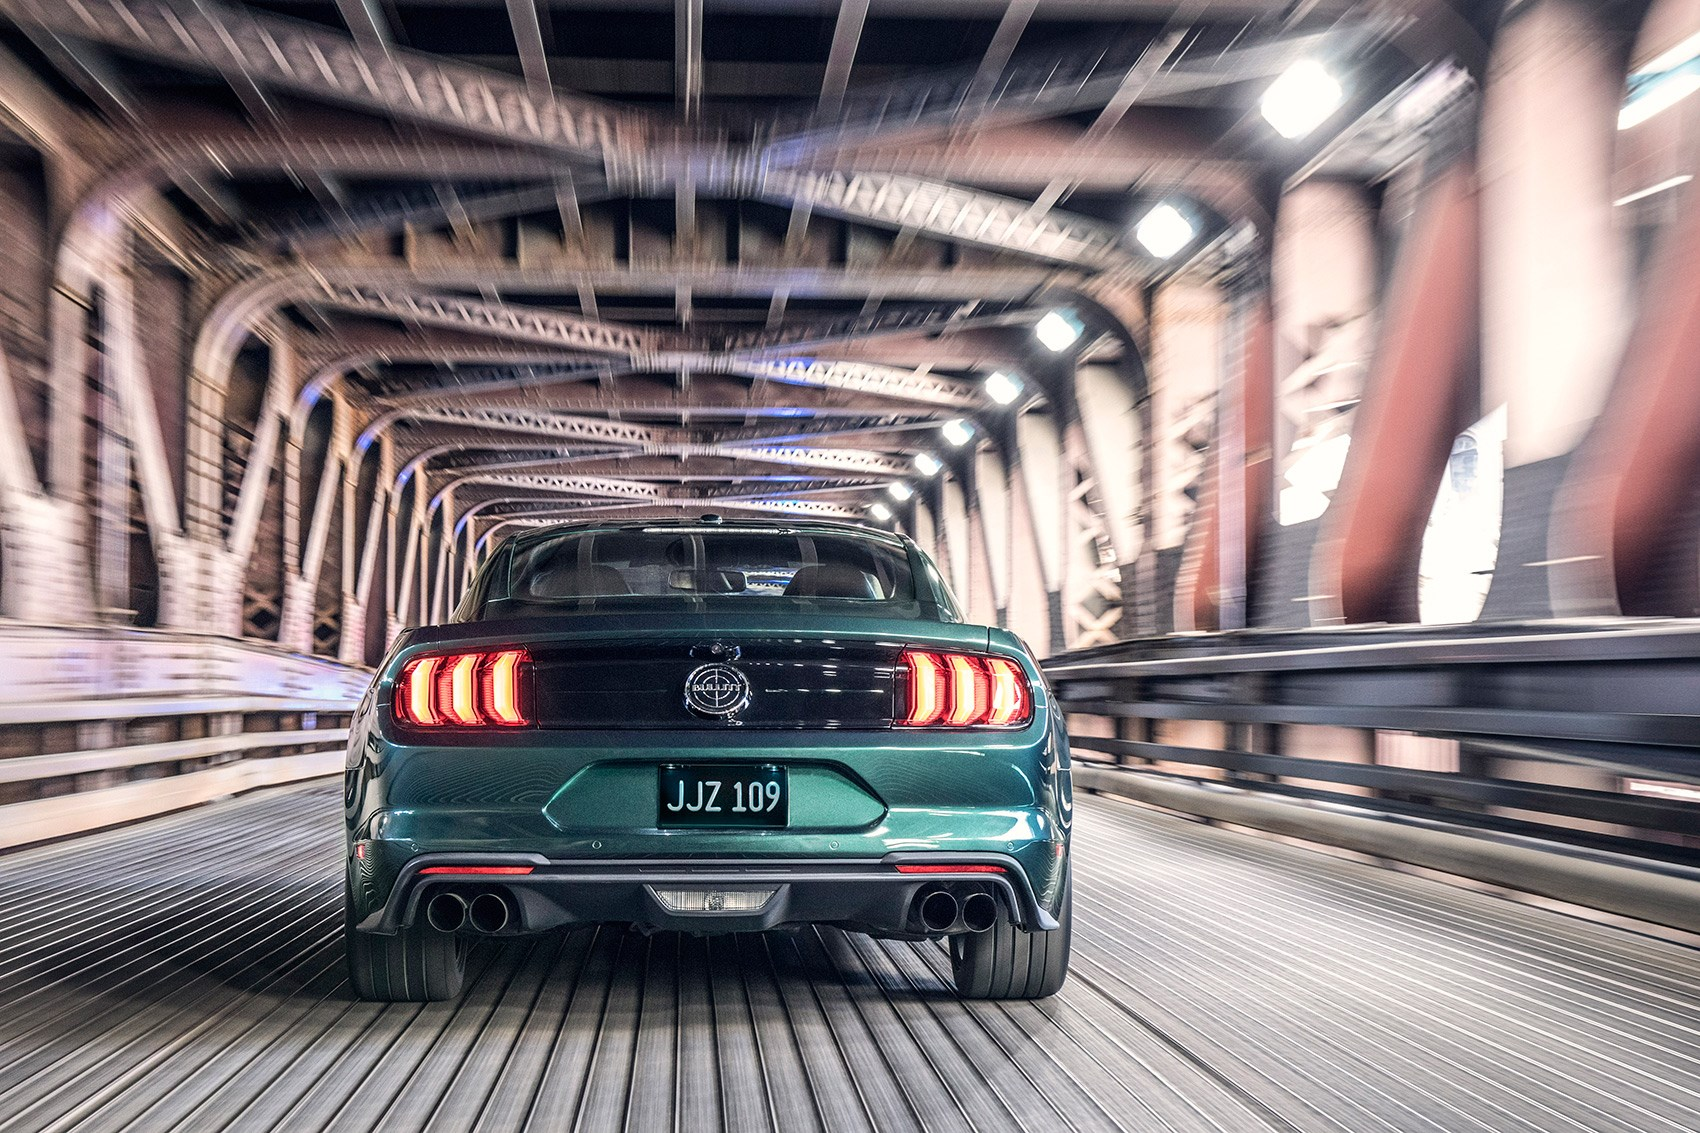 Ford Mustang Bullitt Uk Price Revealed Car Magazine 1960s Sports Cars The New Has A 475bhp 50 Litre V8